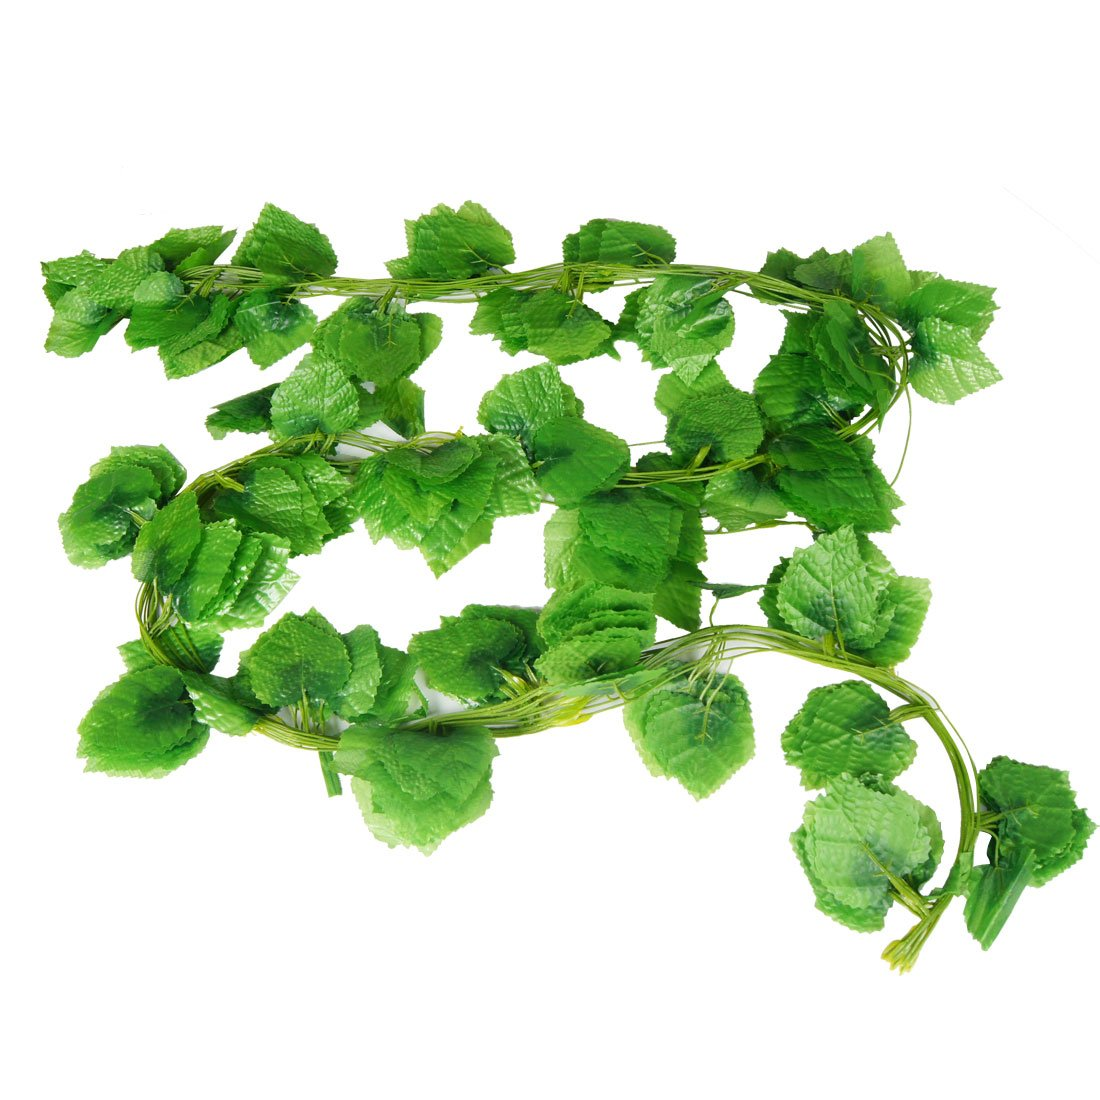 Home decor green artificial grape leaves hanging vine 7 for Artificial grape vines decoration